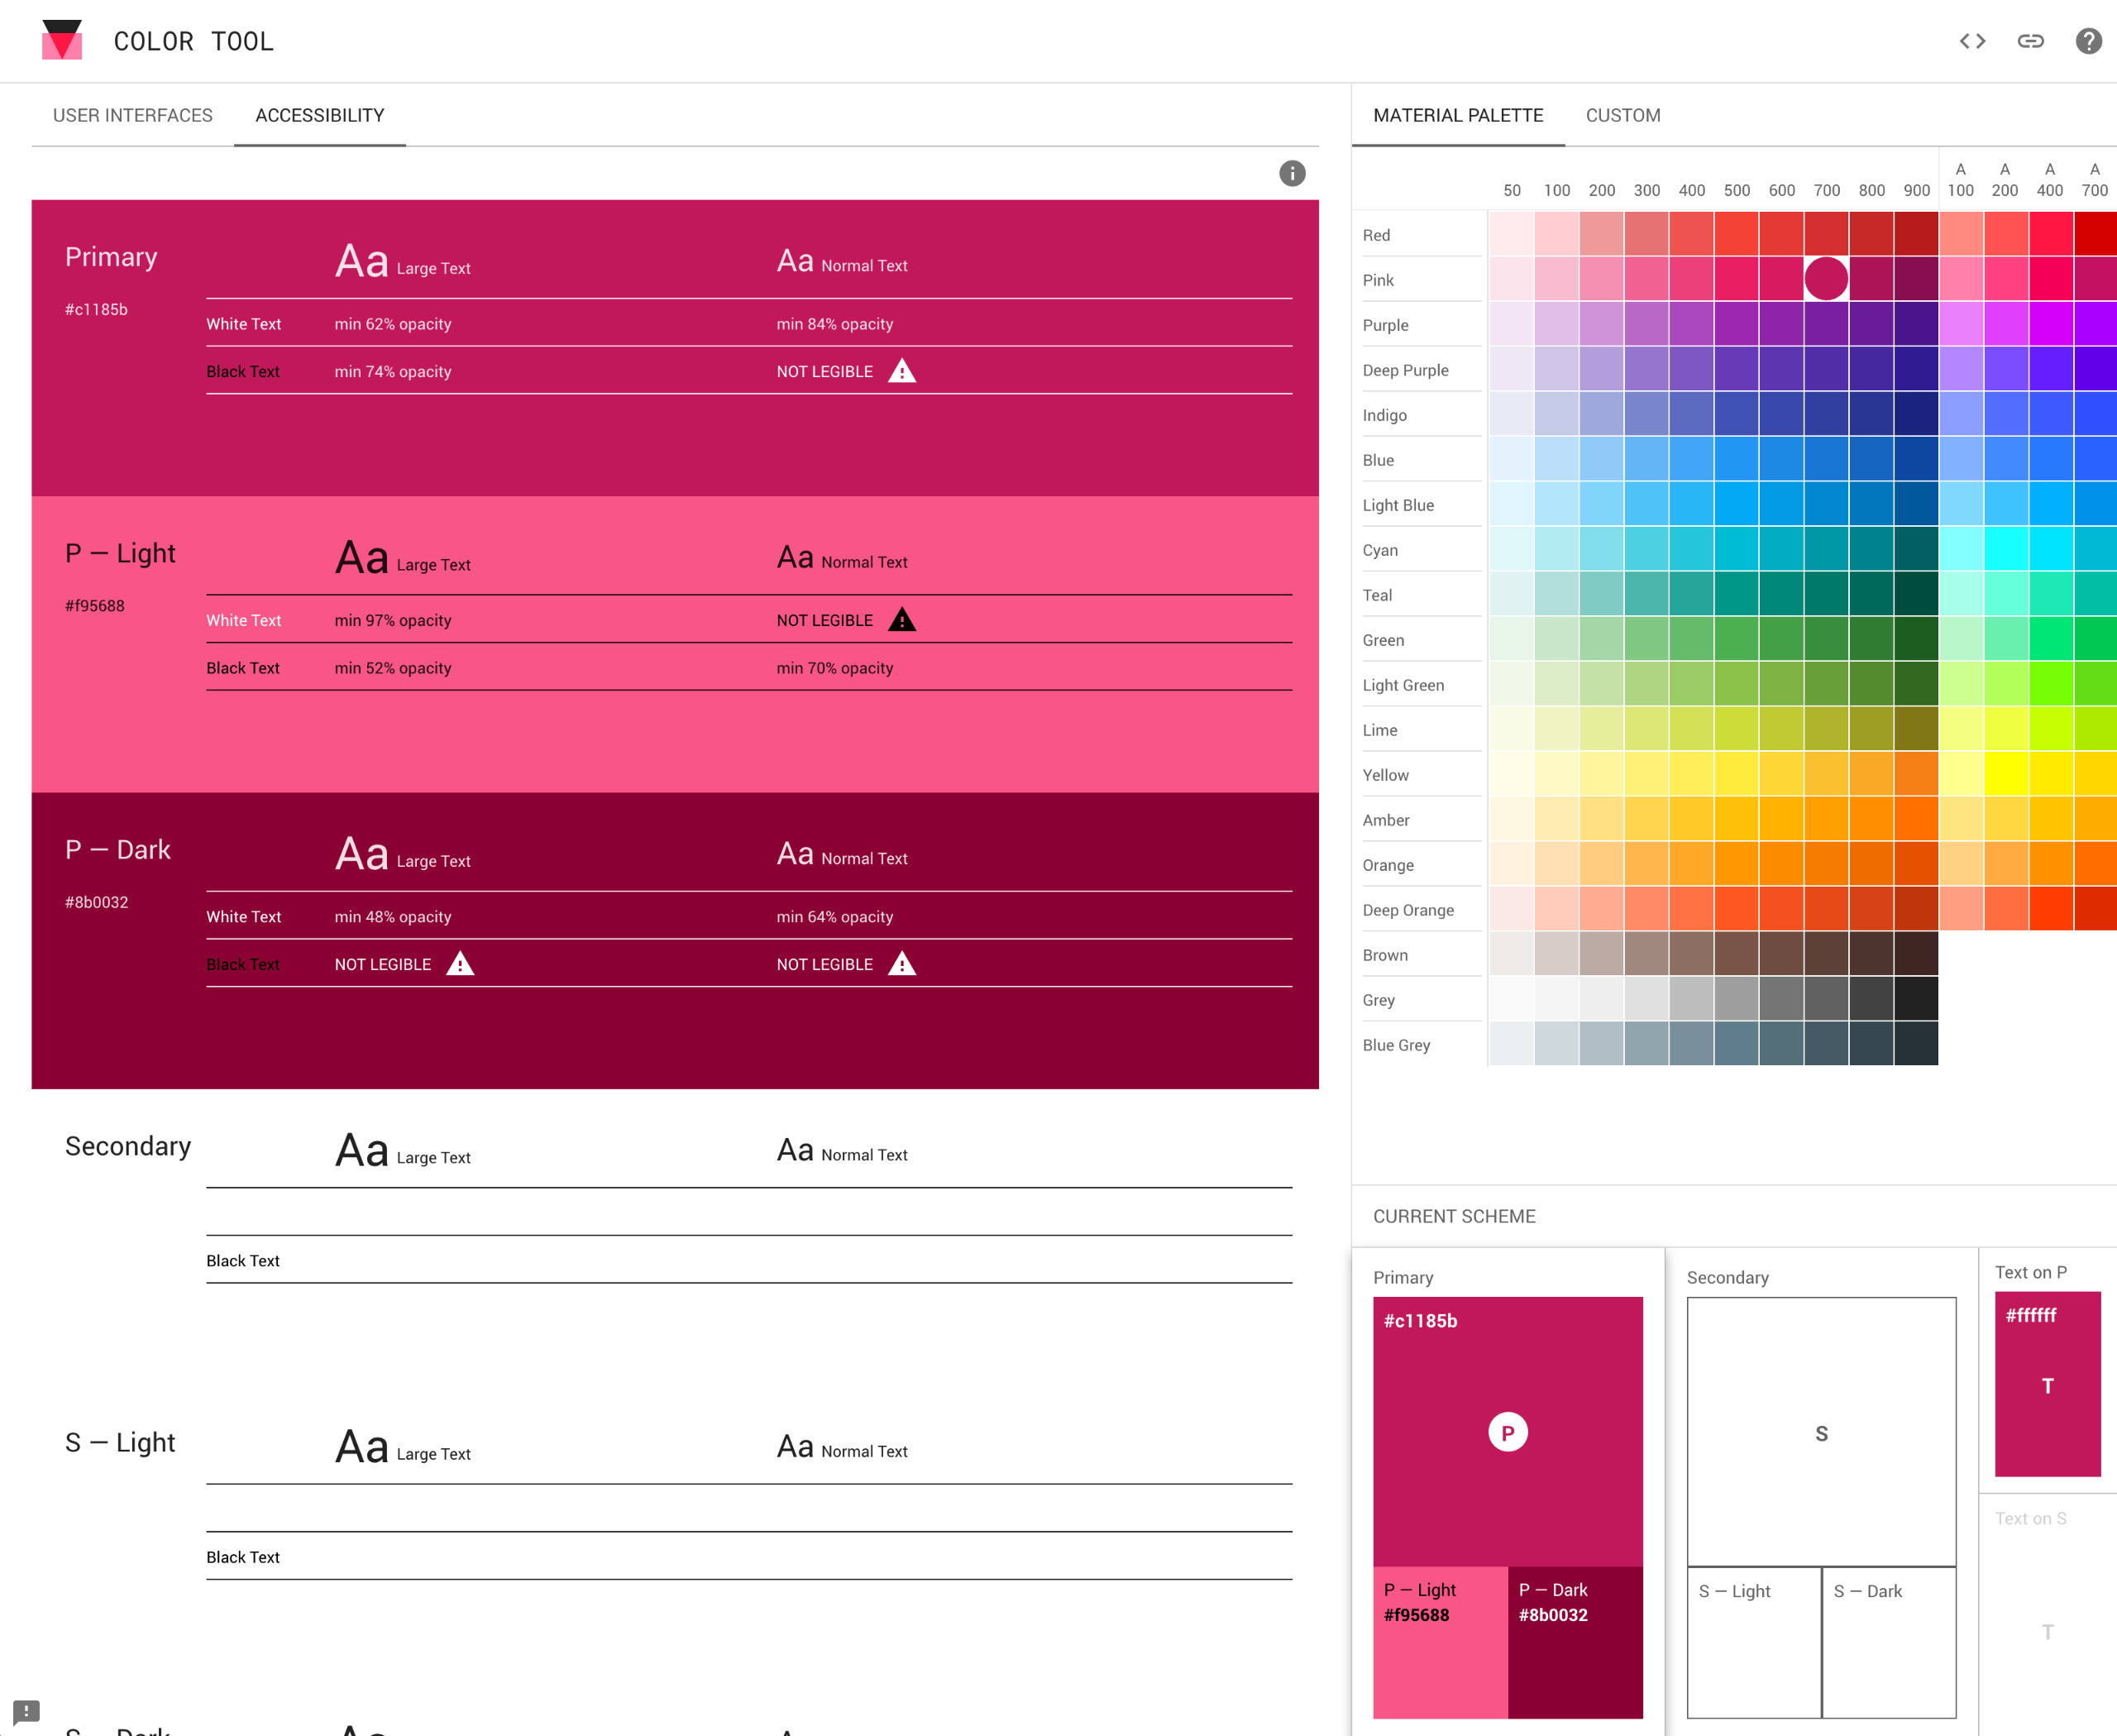 Color Tool Material Design. Goo - ellowebdesign | ello